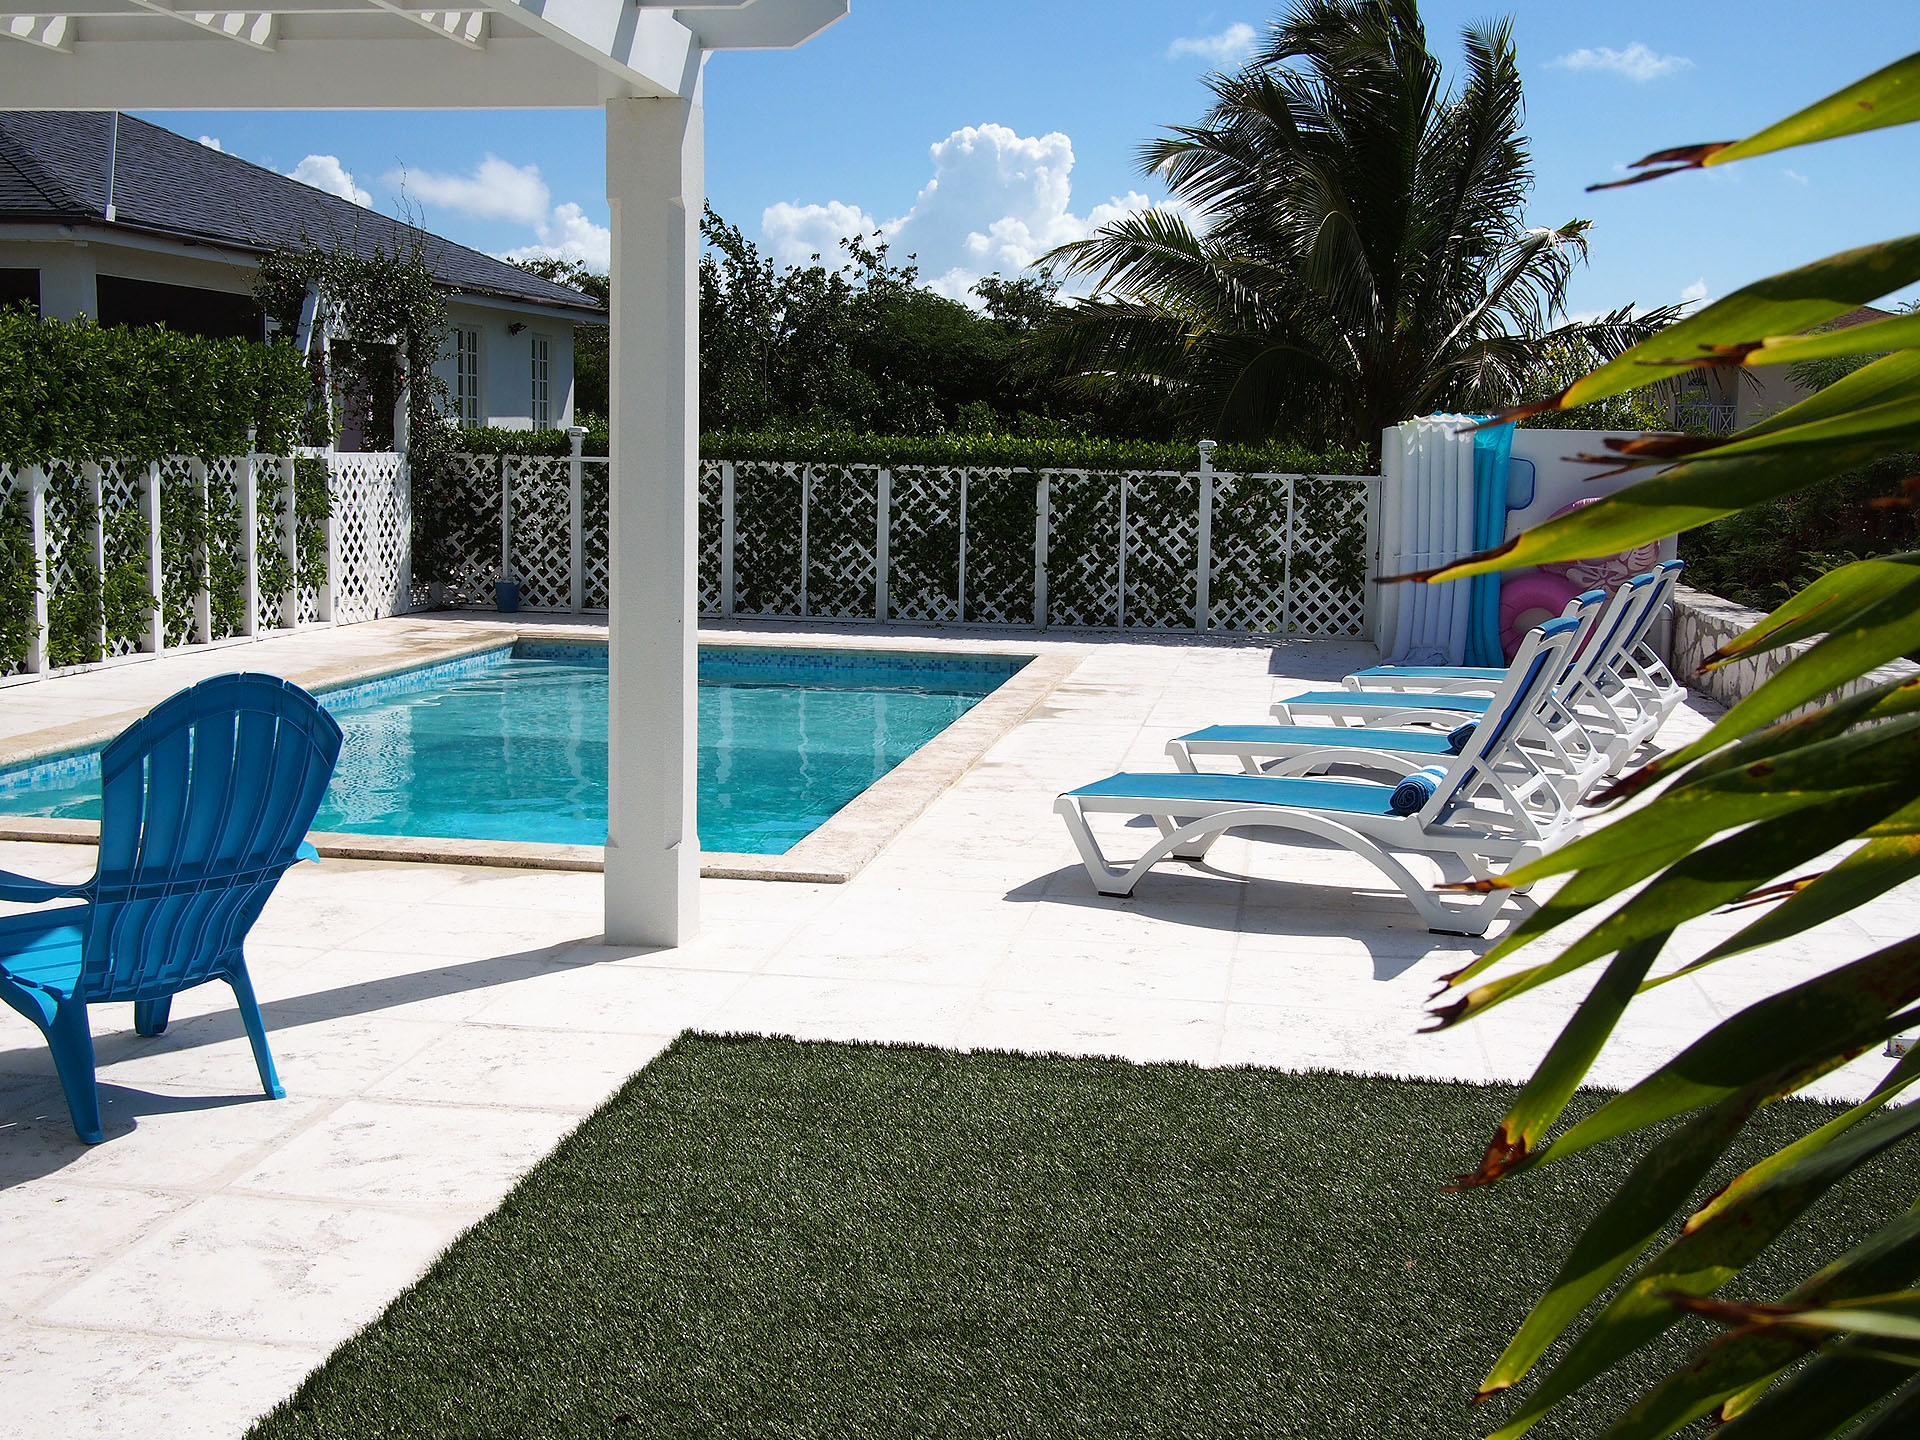 La maison Bleu - turquoise - Turks and Caicos Rental